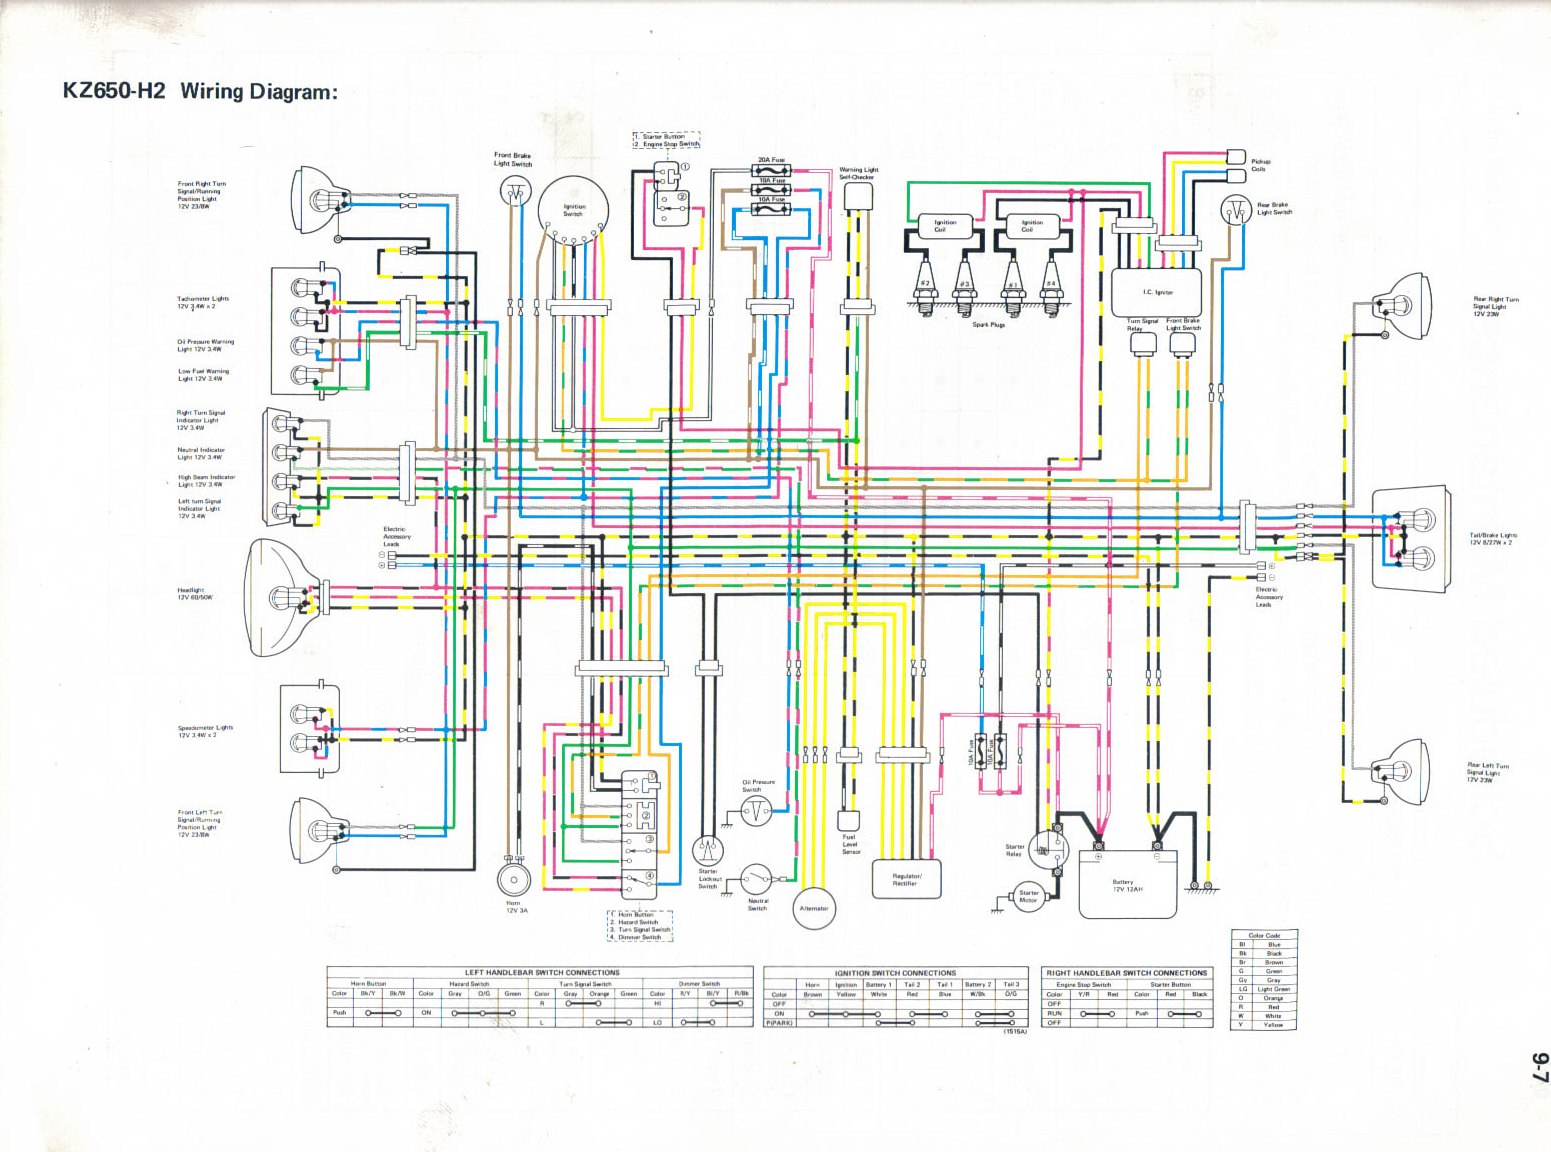 KZ650 H2 kawasaki h2 wiring diagram kawasaki wiring diagrams instruction ex500 wiring diagram at nearapp.co